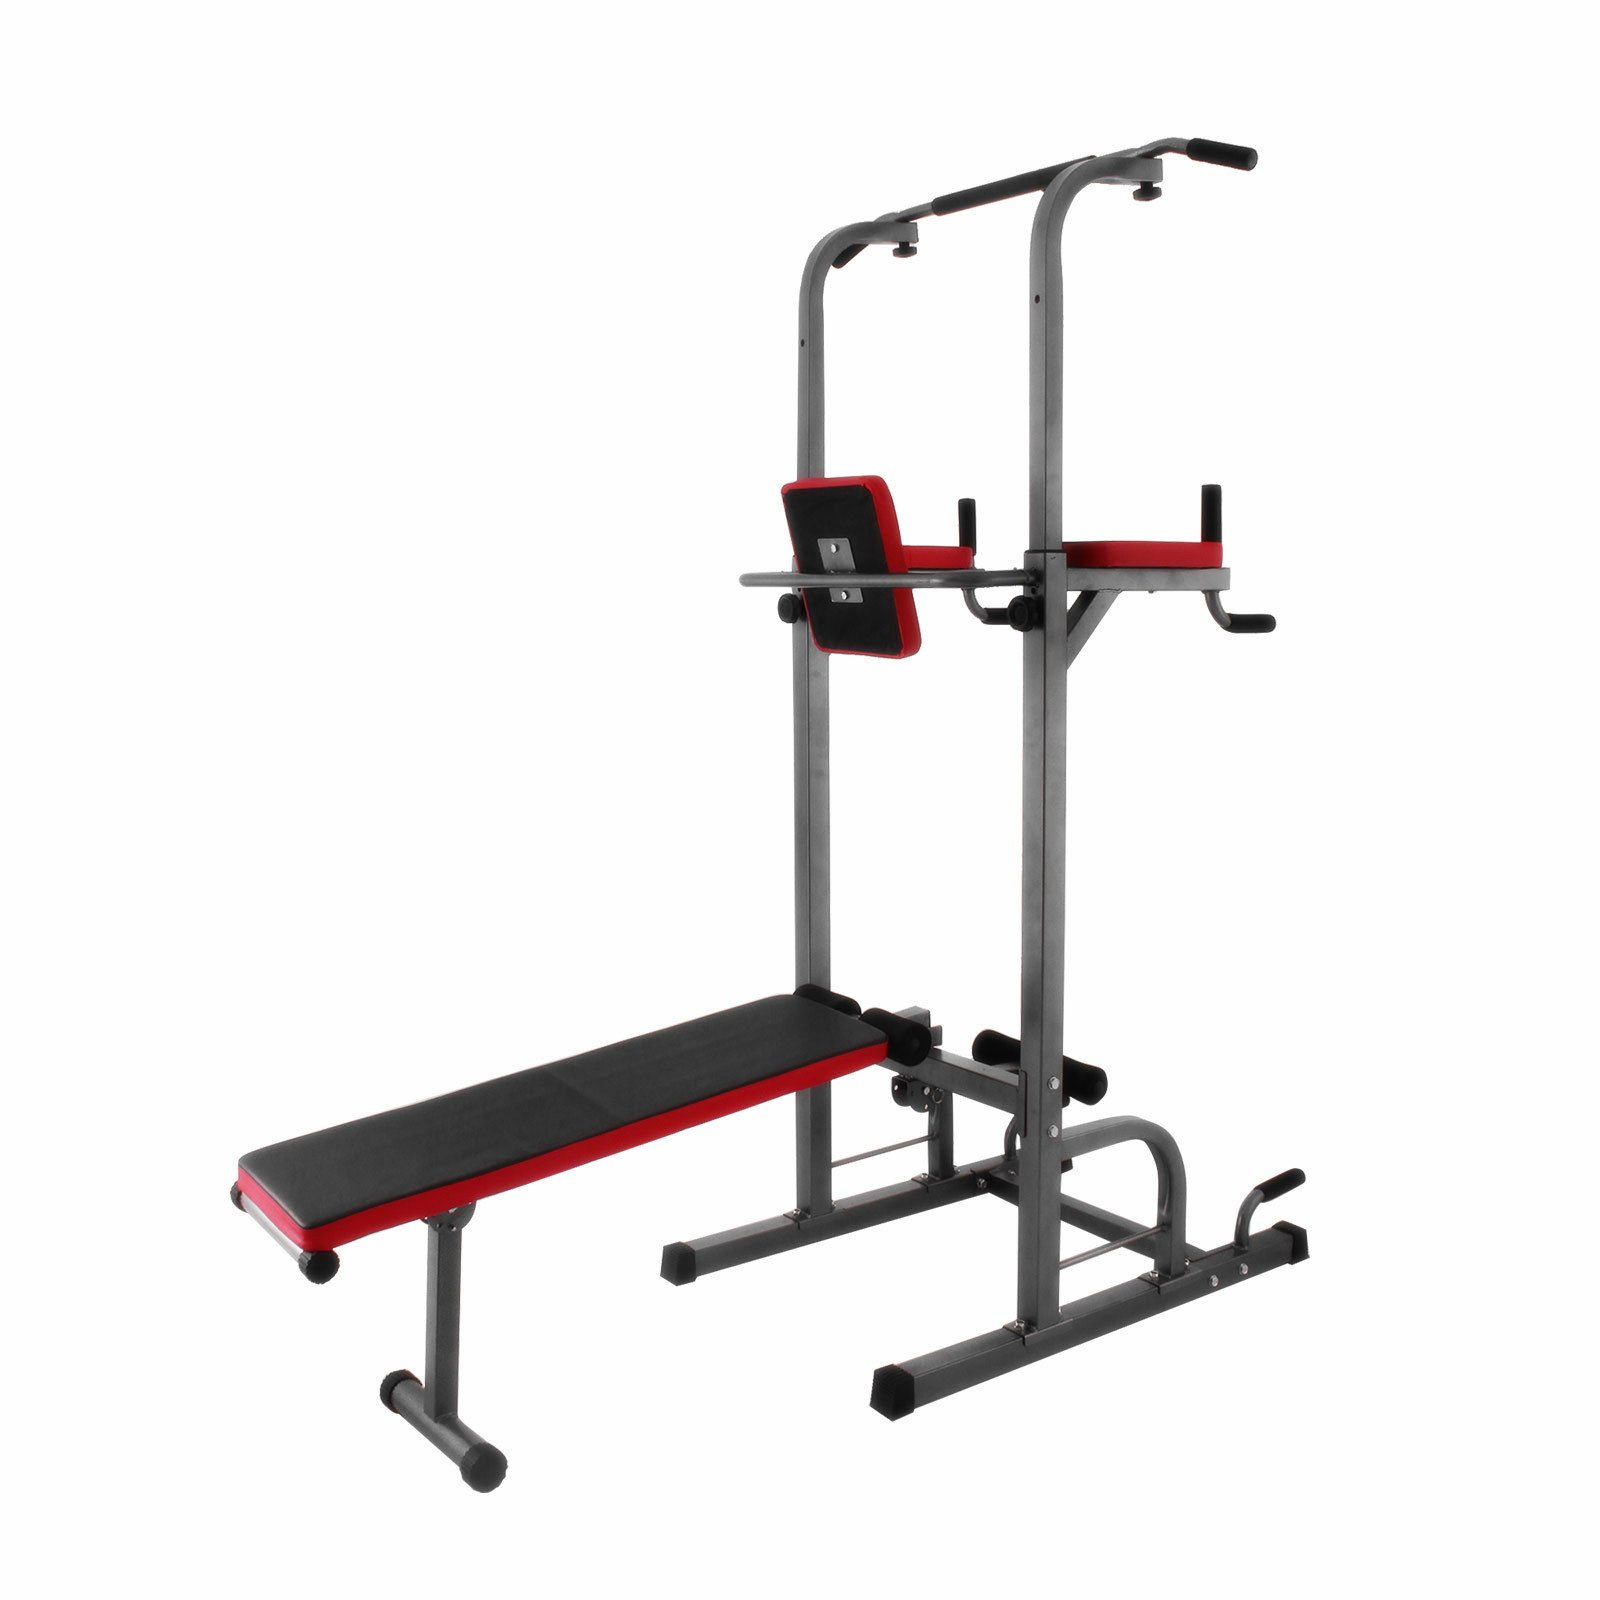 Popsport 330/440LBS Power Tower Station Series Multi-Station Power Tower Adjustable Height Dip-Station Workout Pull Up Station for Indoor Home Fitness (363 with Sit Up Bench)